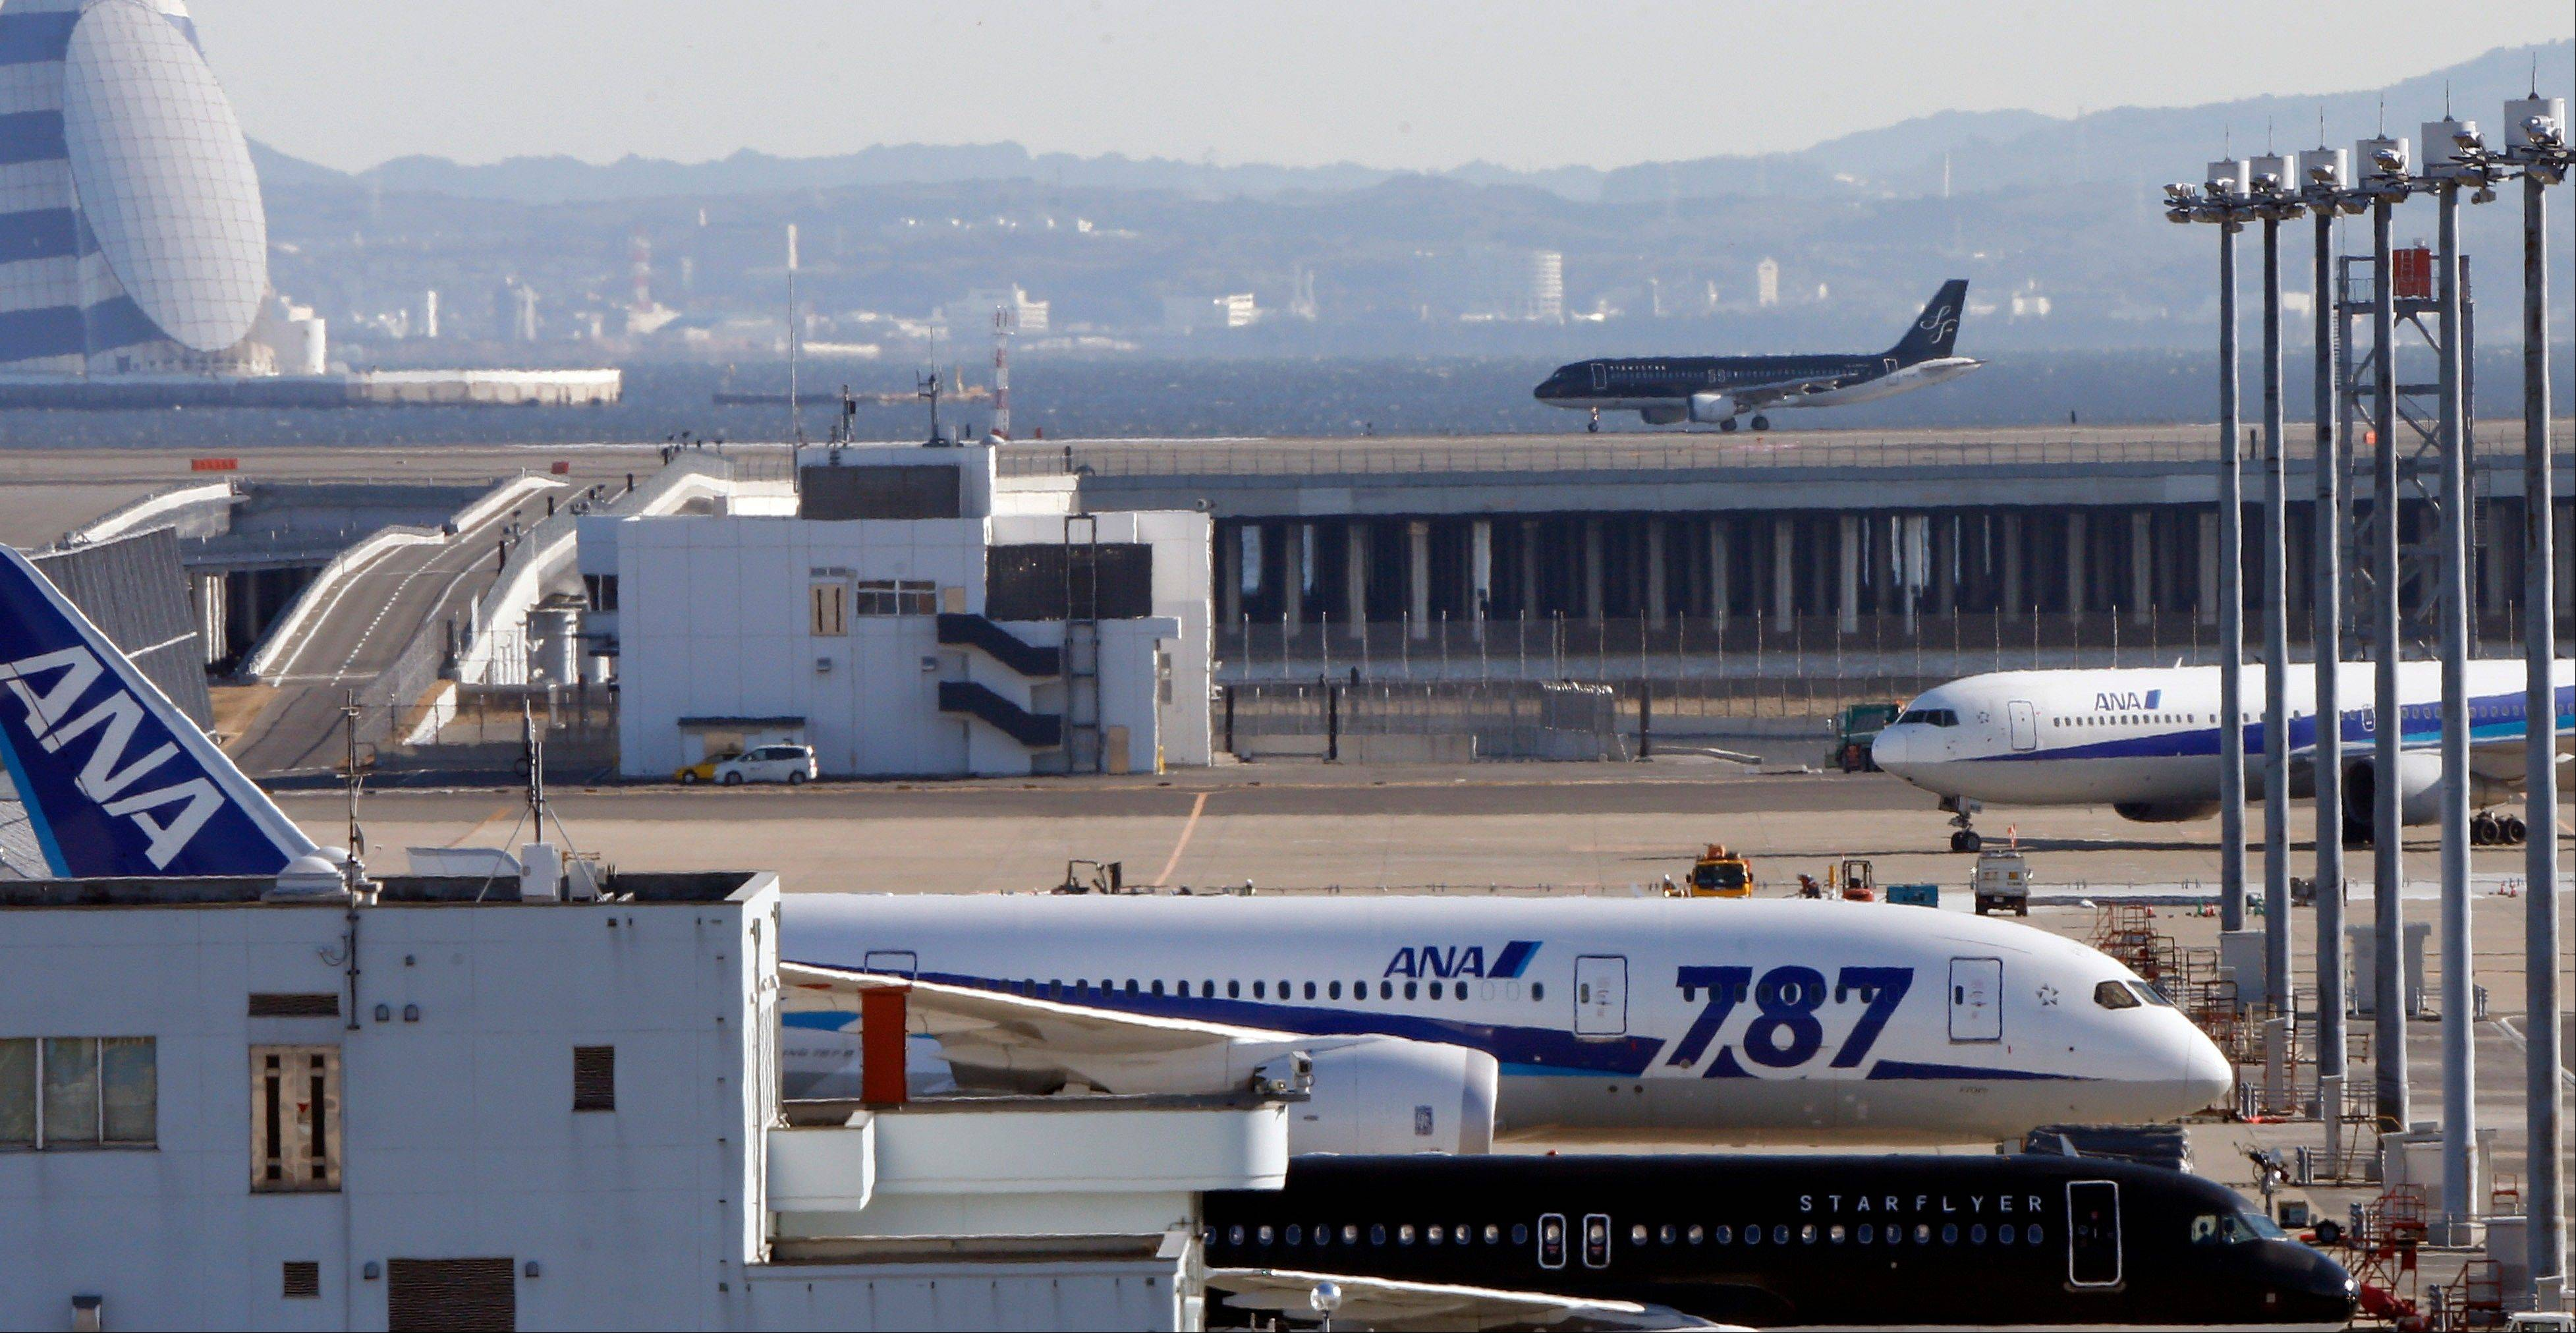 A grounded All Nippon Airways� Boeing 787 on the tarmac at Haneda airport in Tokyo.